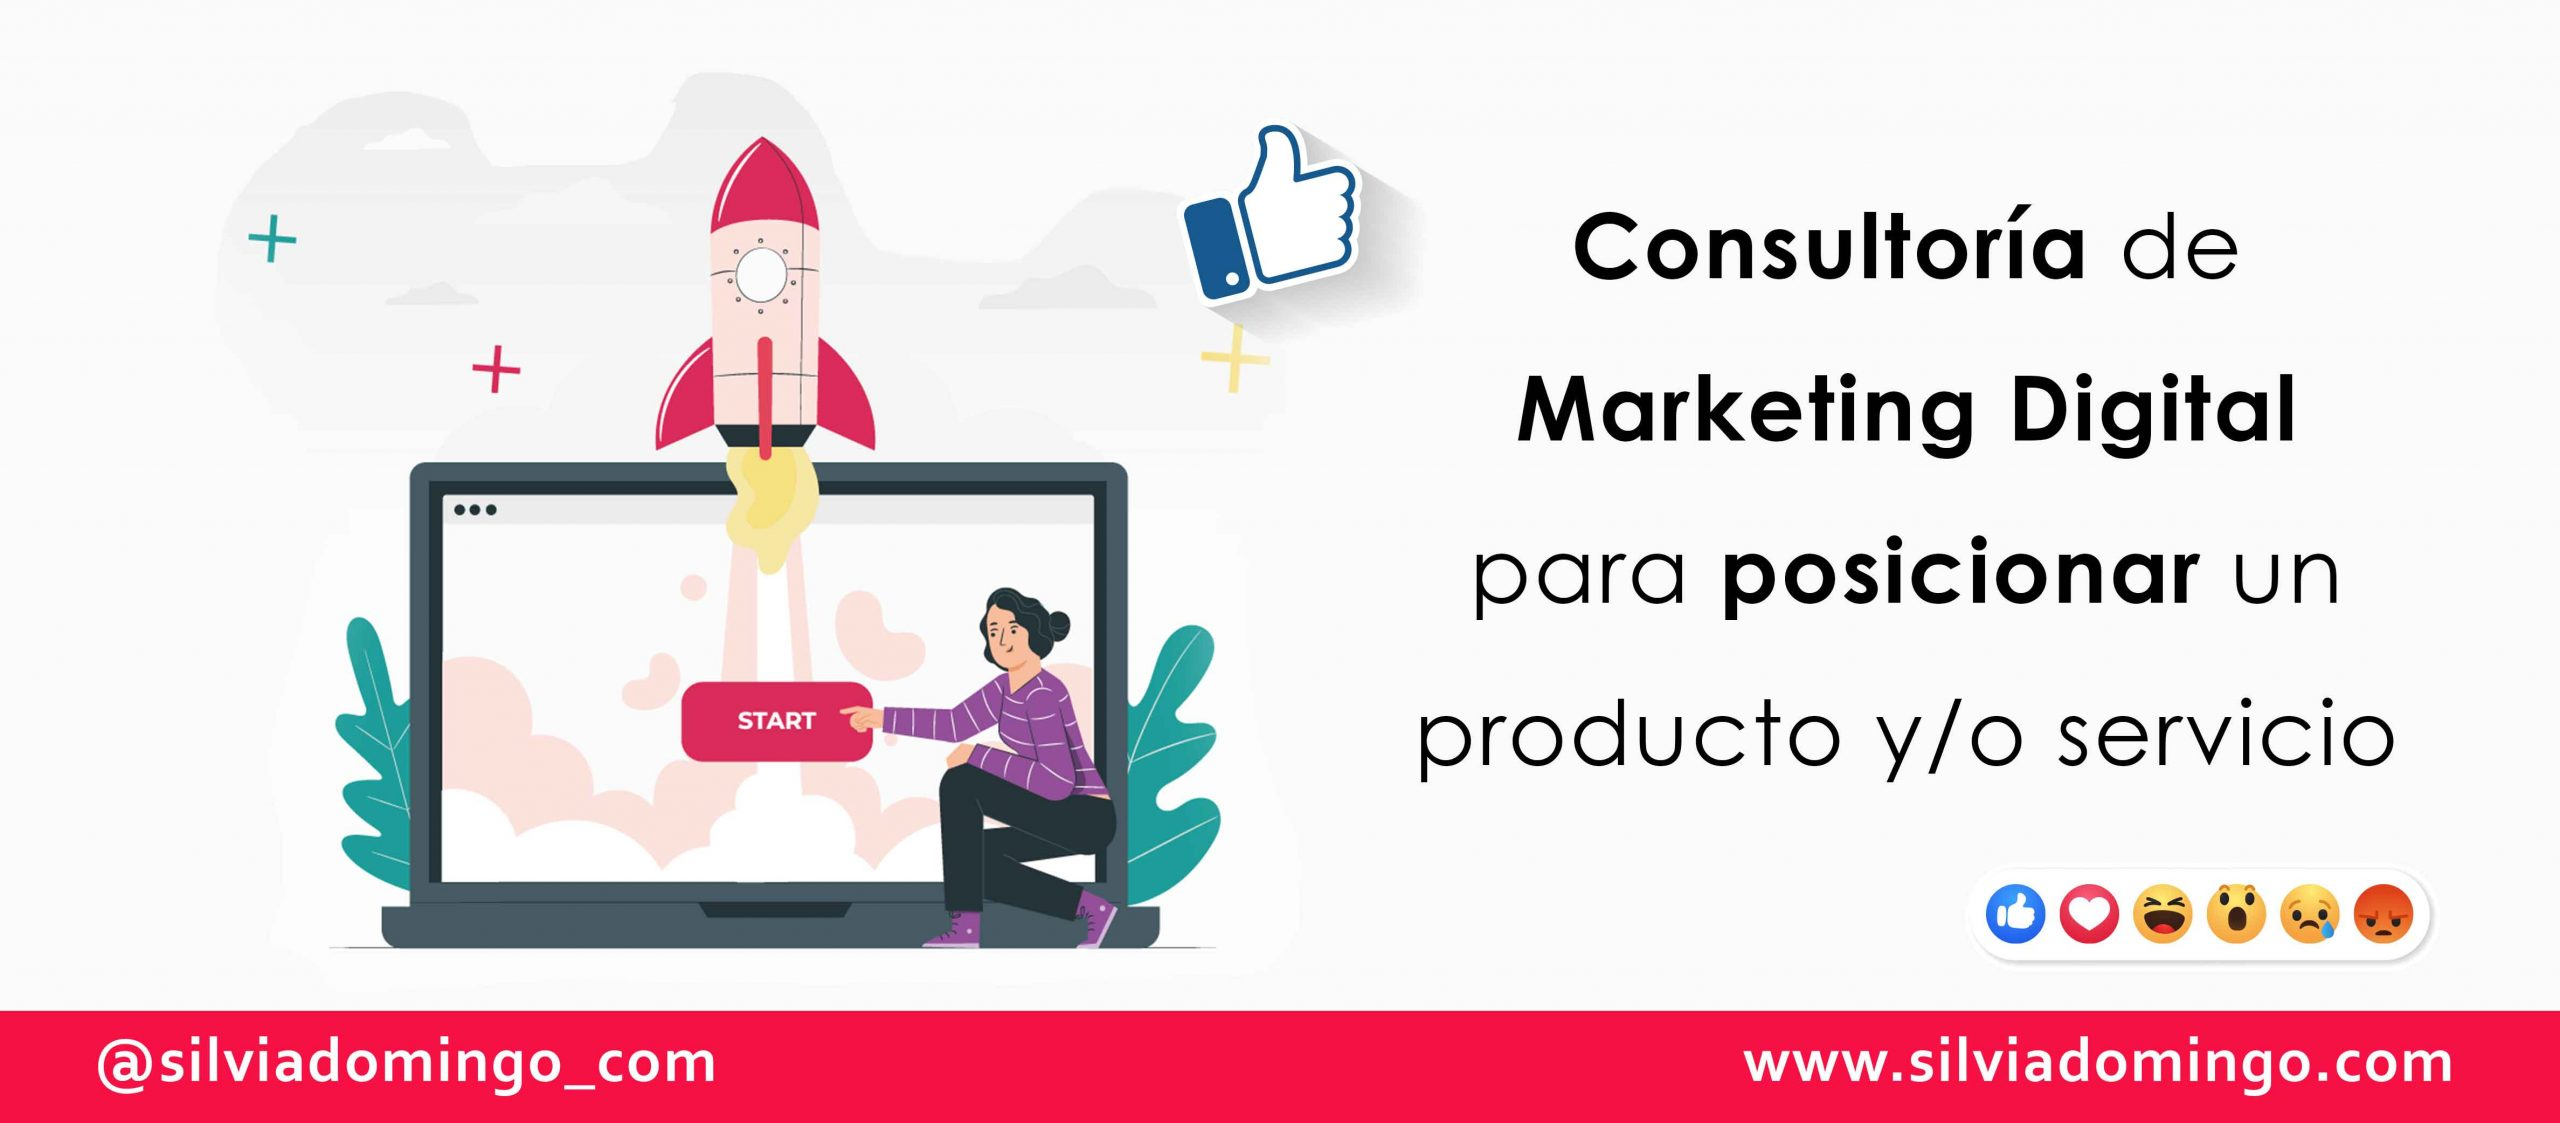 consultoria-marketing-digital-silvia-domingo-